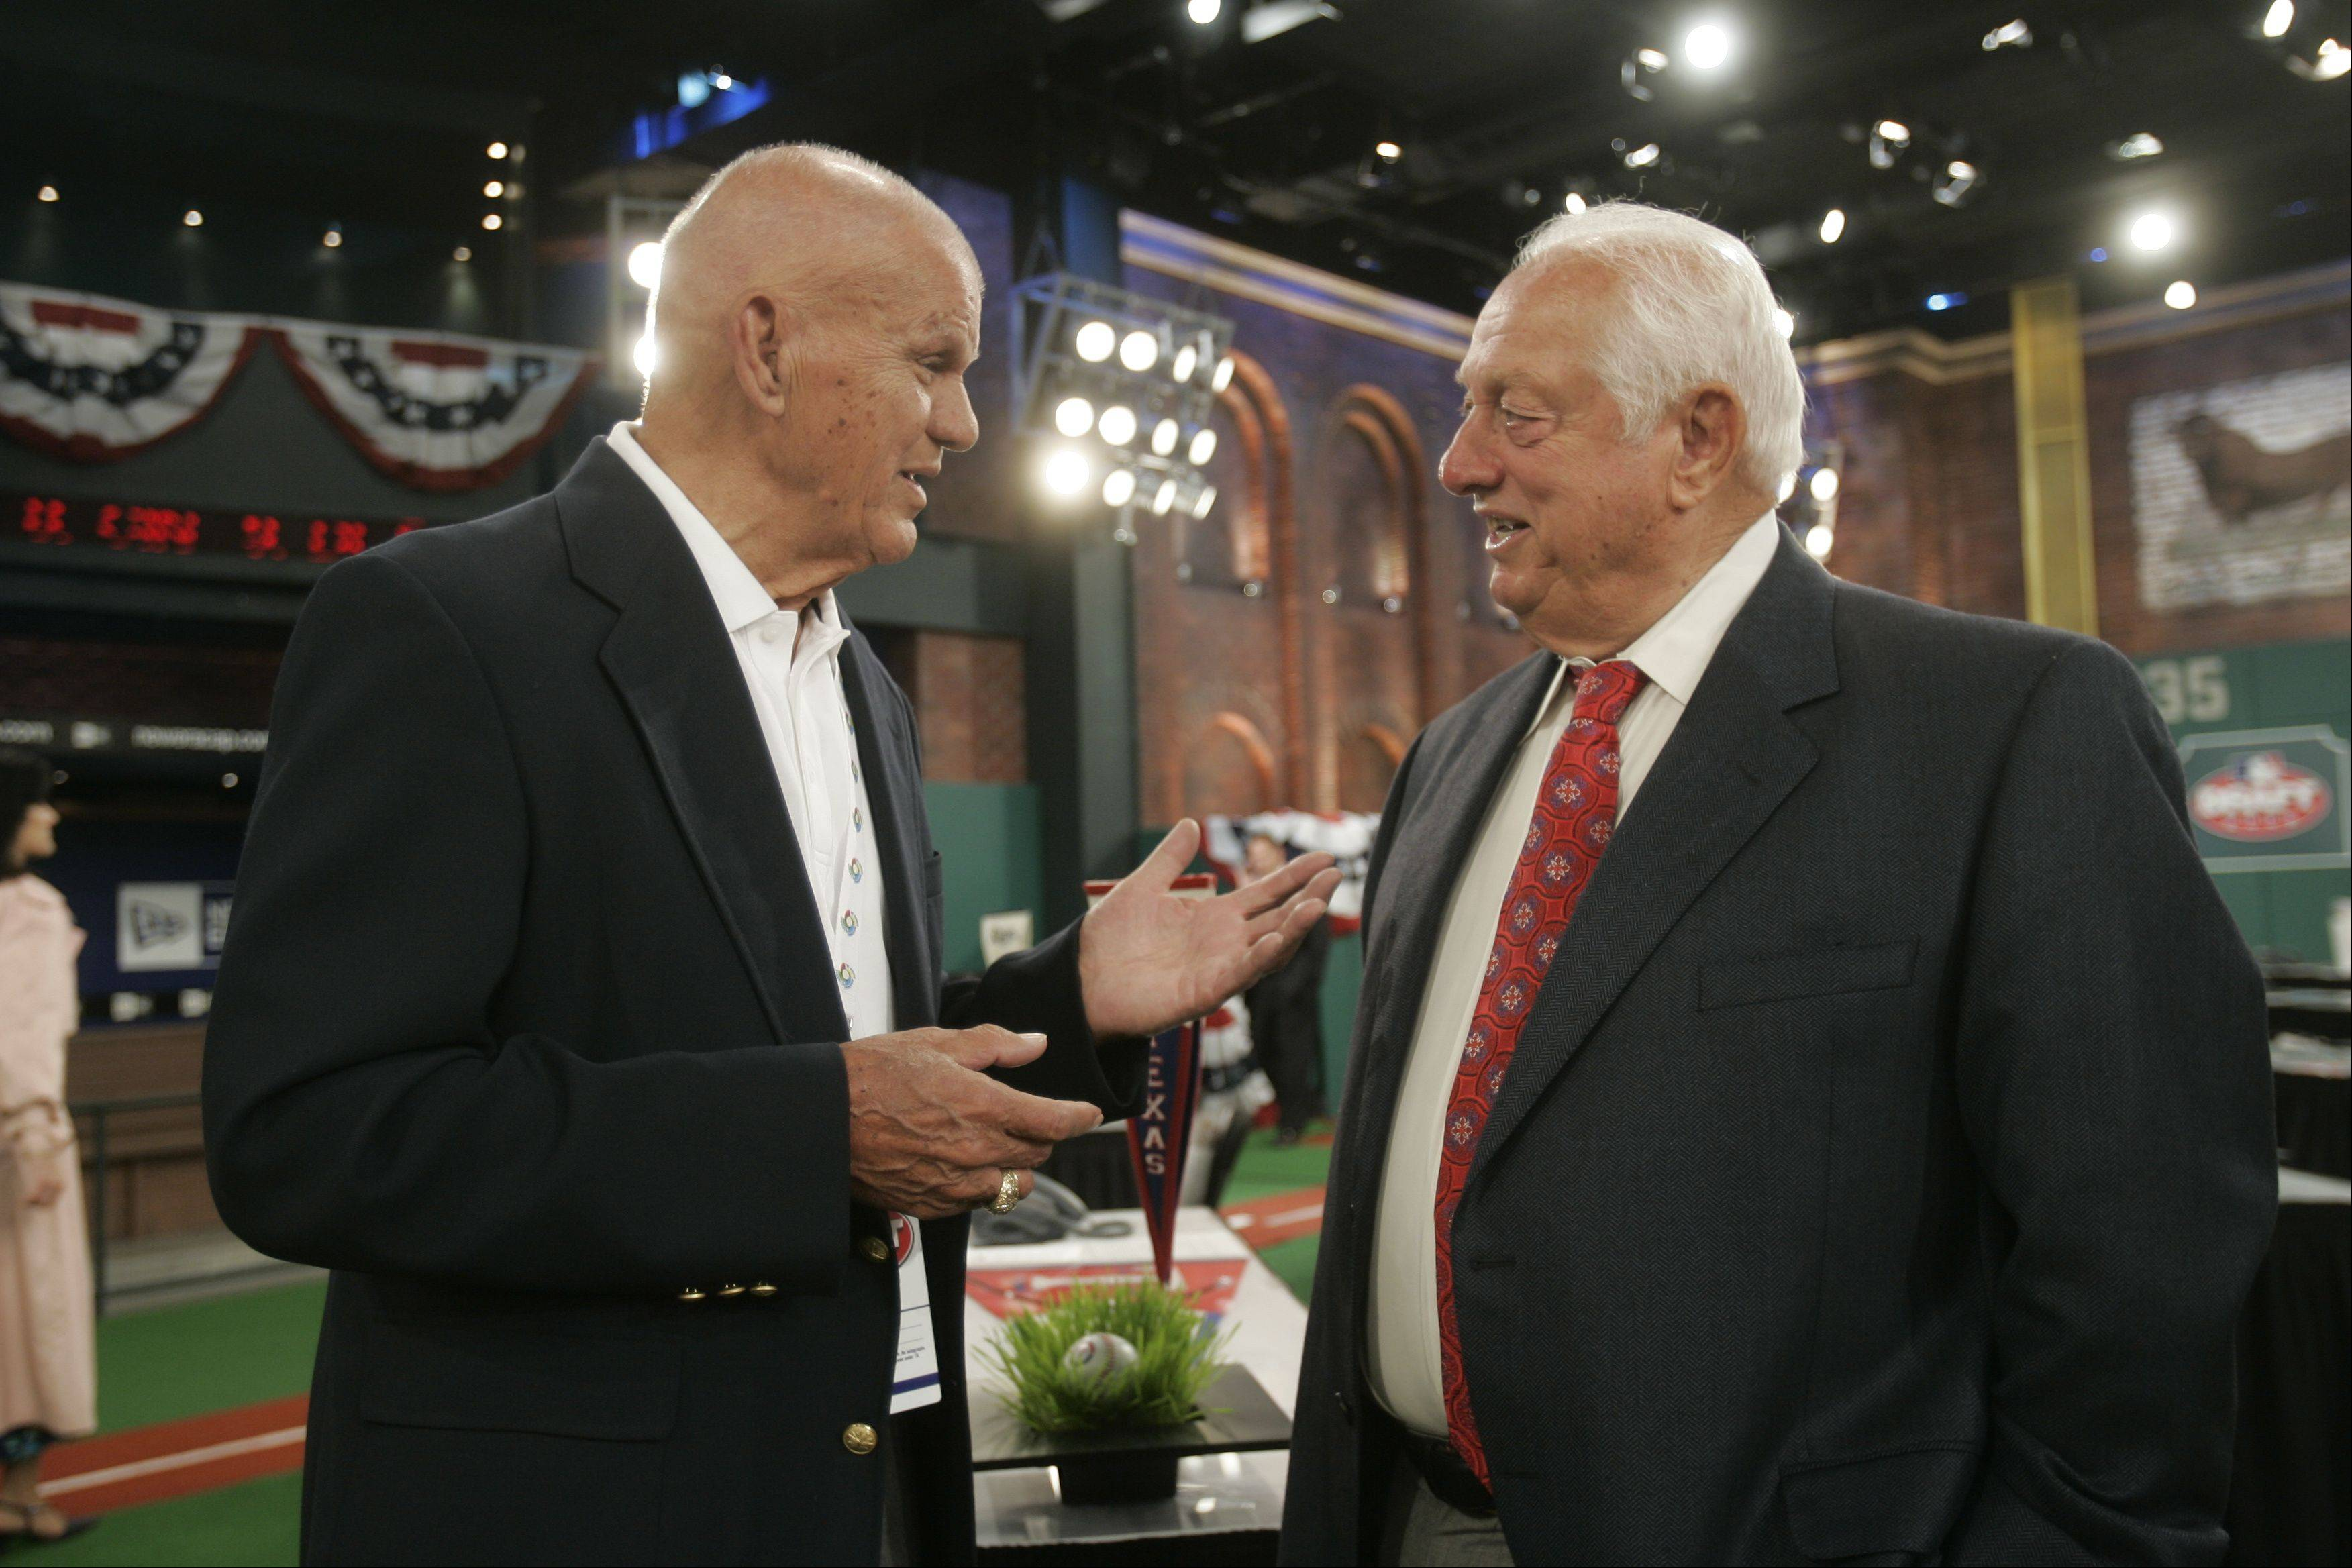 Former baseball player Moose Skowron talks with Dodgers executive and former manager Tommy Lasorda before the start of the baseball draft at MLB Network Studios in Secaucus, N.J., Tuesday, June 9, 2009.